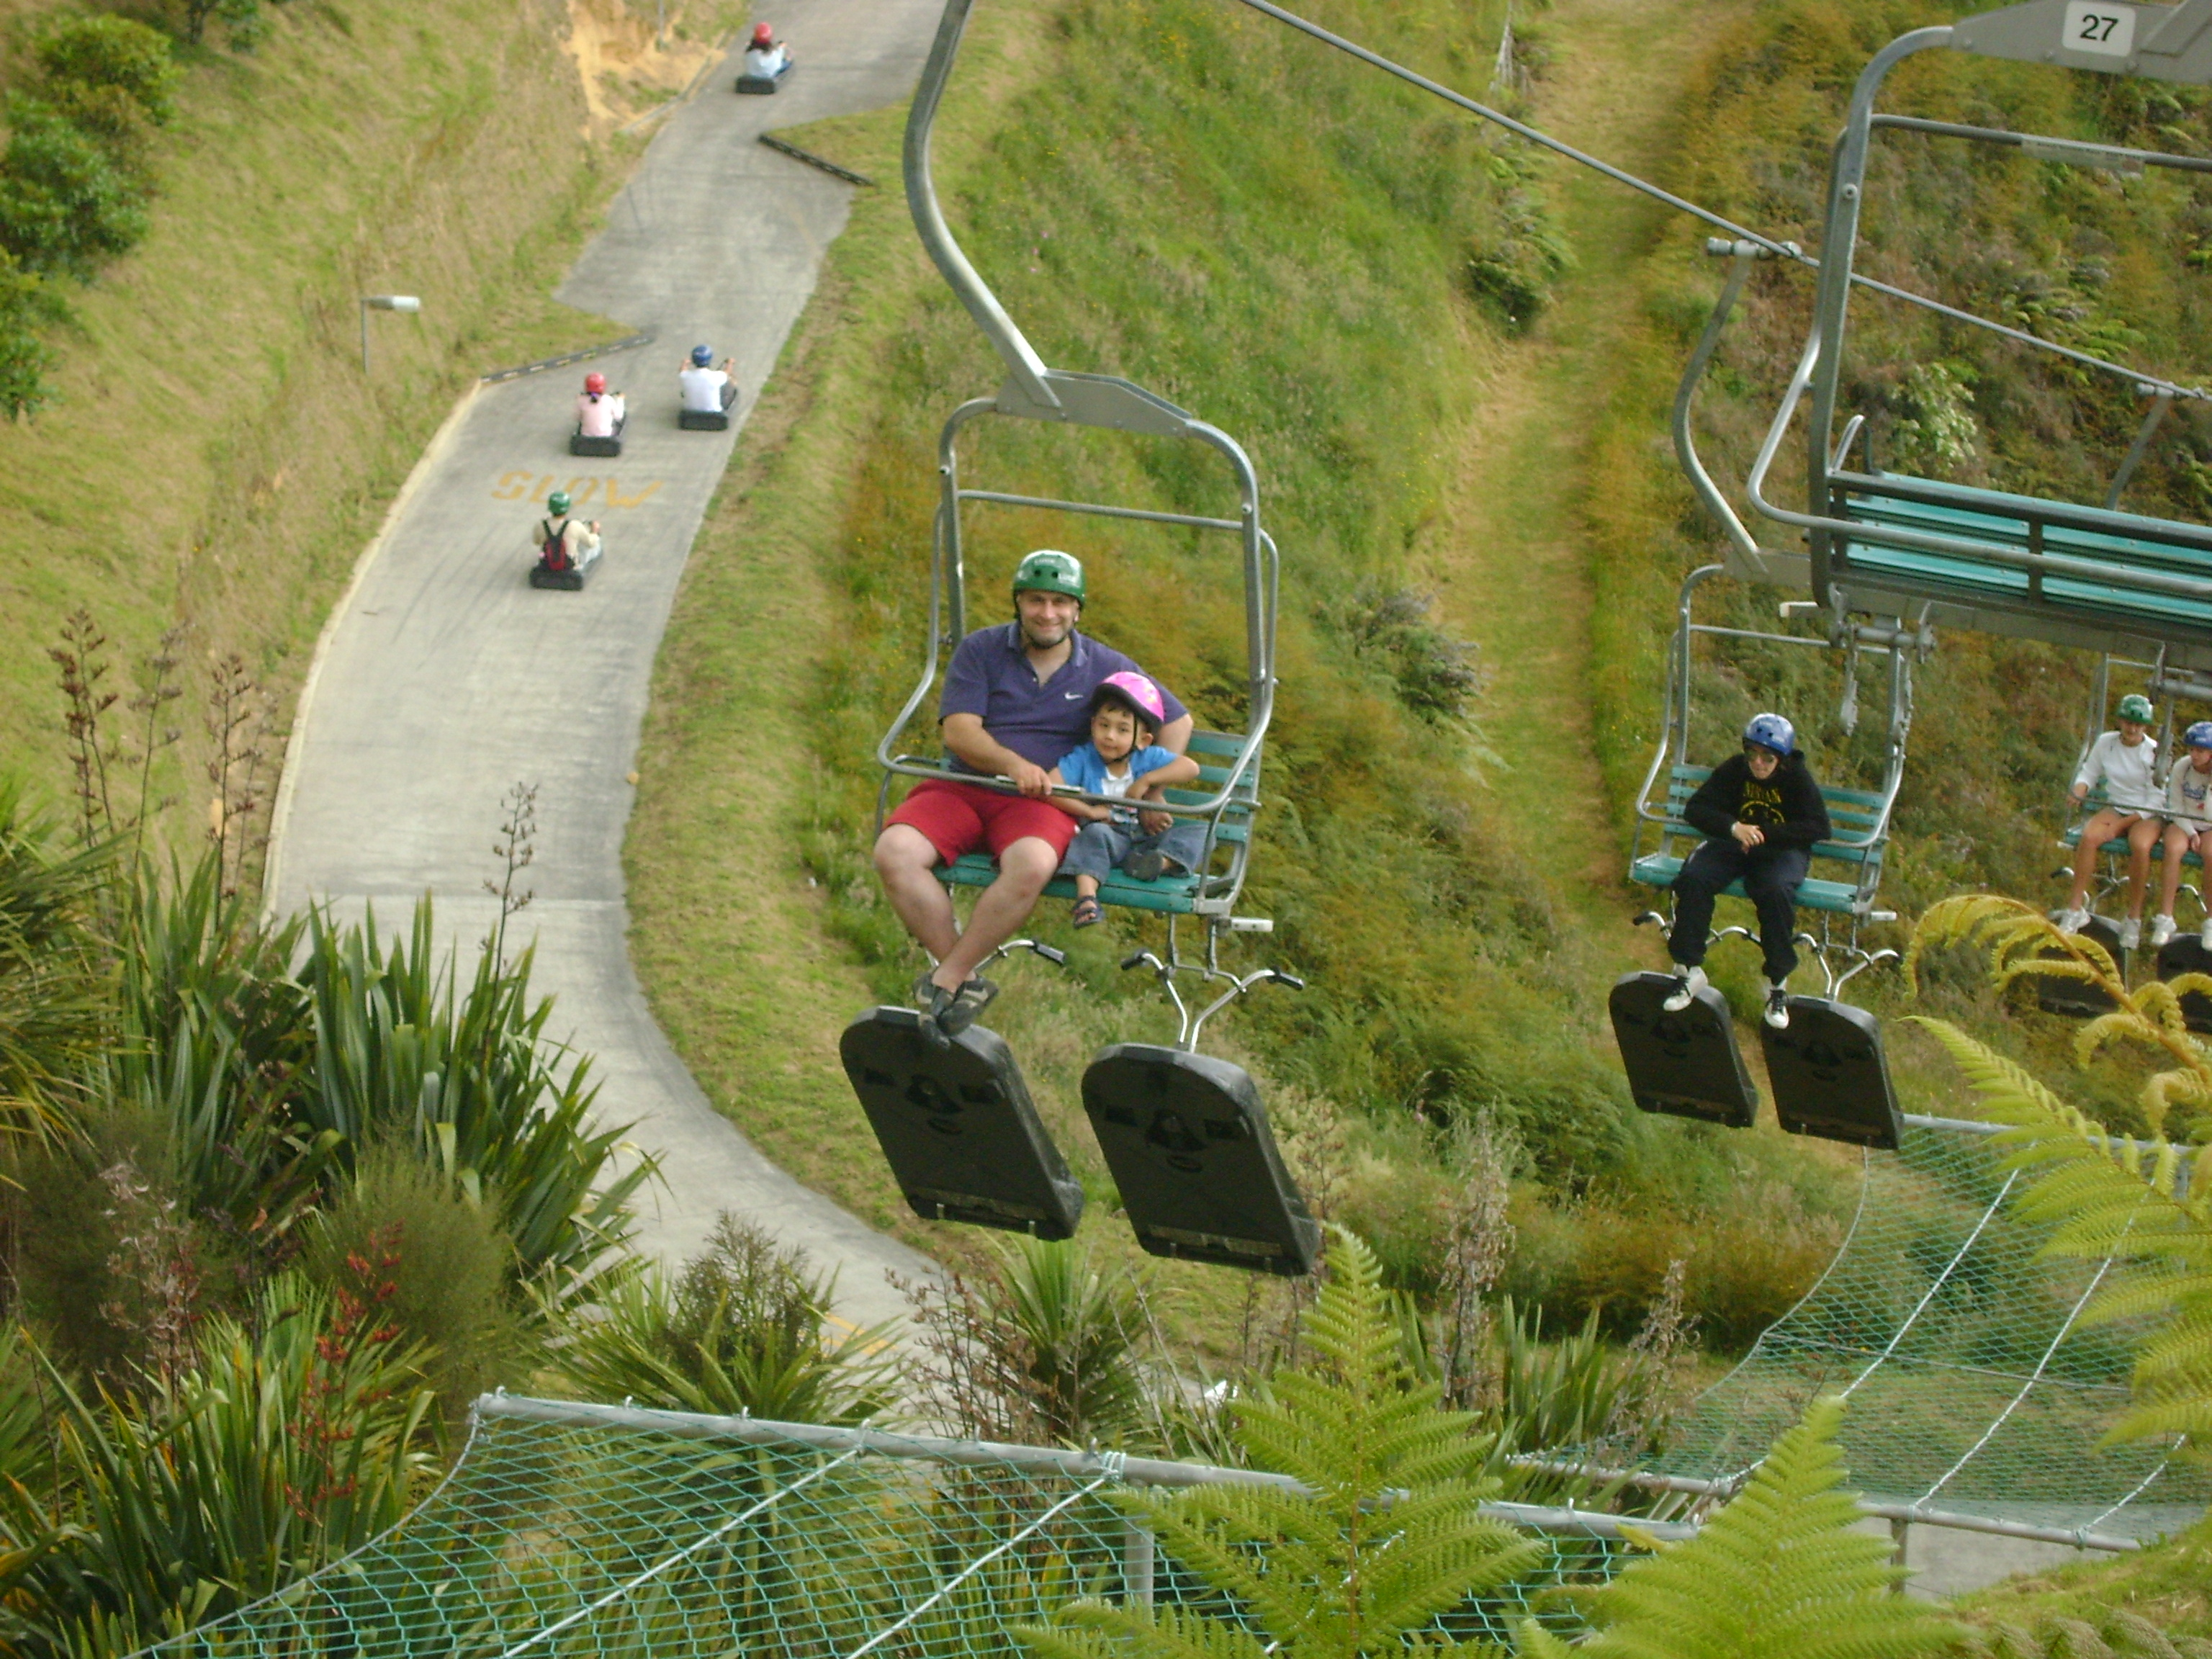 skyline chair lift and luge